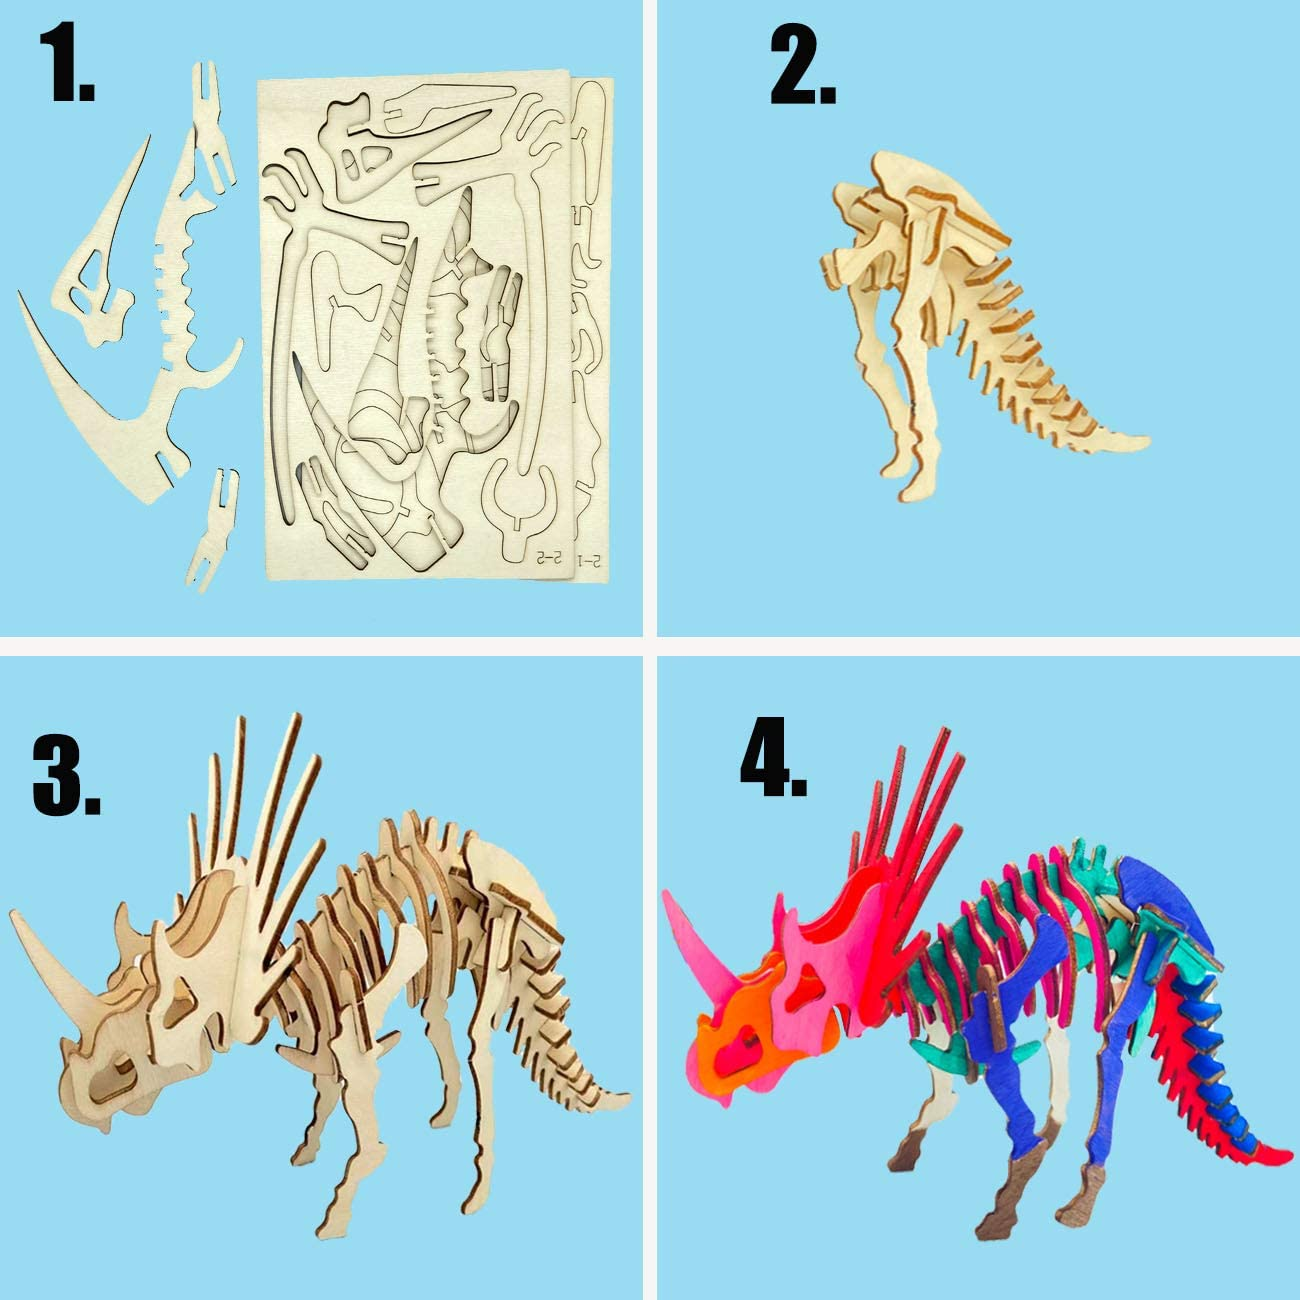 4PCS Safe and Non-Toxic Easy Premium Puzzles Gifts for Girl Boys Teen Adults GOSODME 3D Dinosaur Skeleton Puzzles for Kids,Wooden Hands Craft Painting DIY Model Assembly Educational Toy